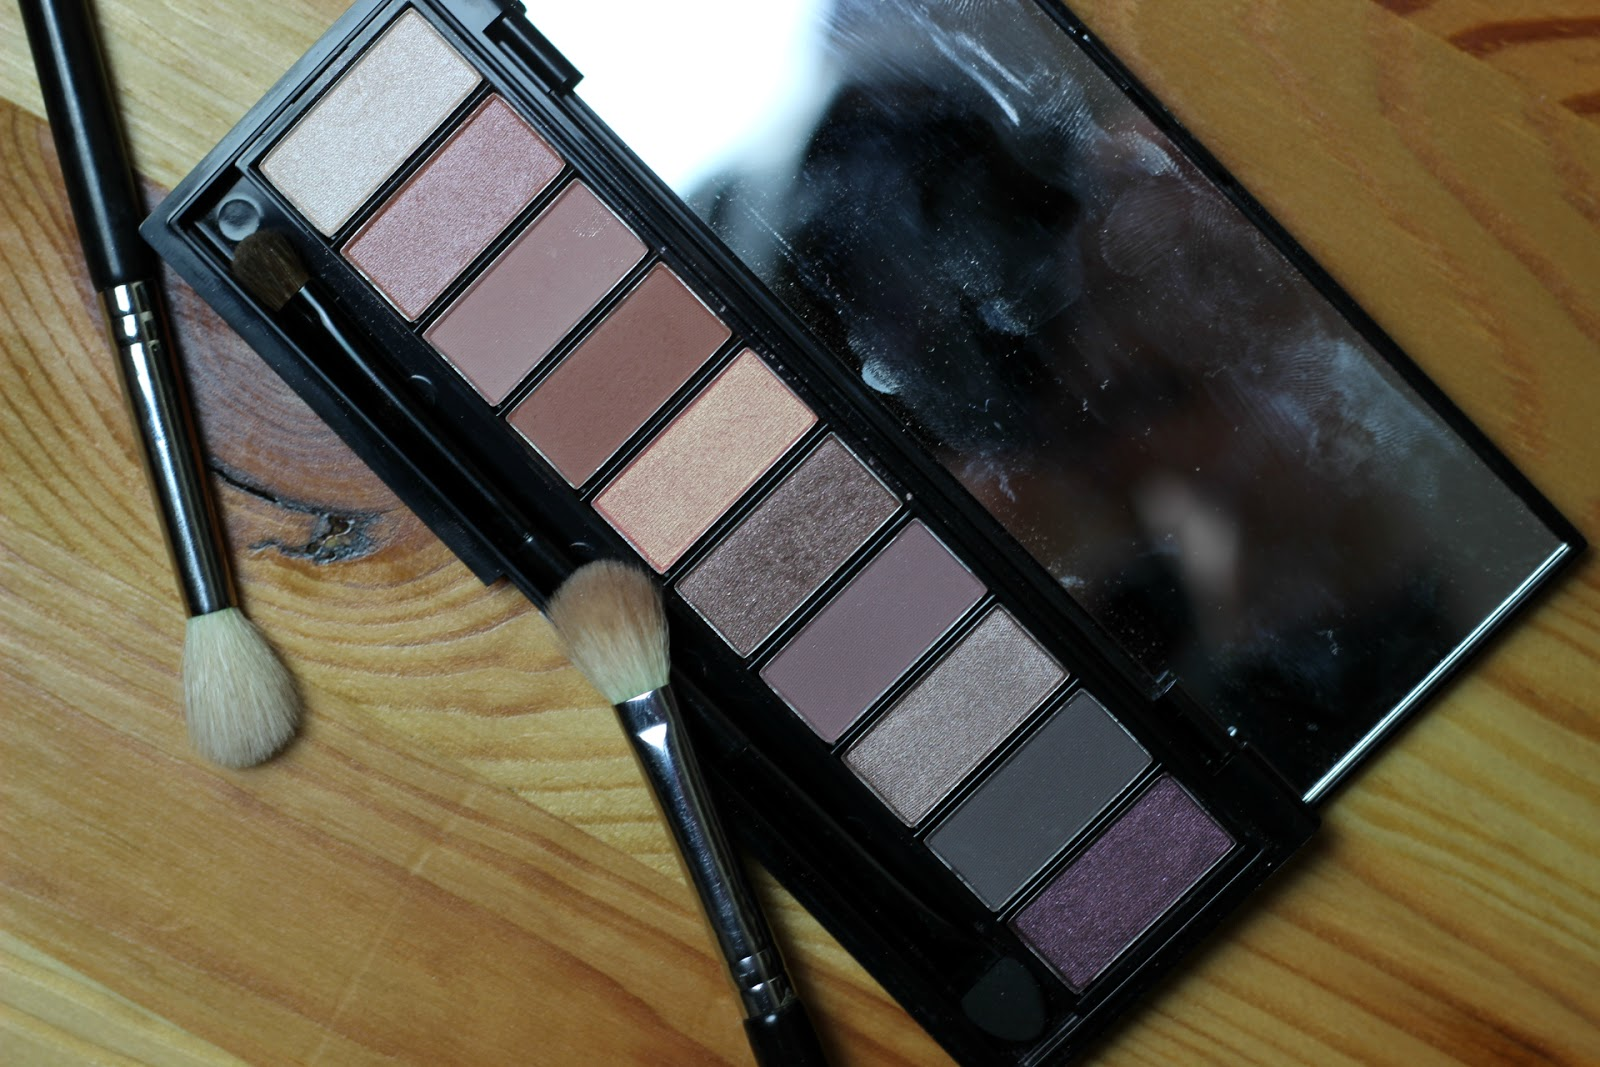 L'Oreal La Palette Nude Review & Swatches